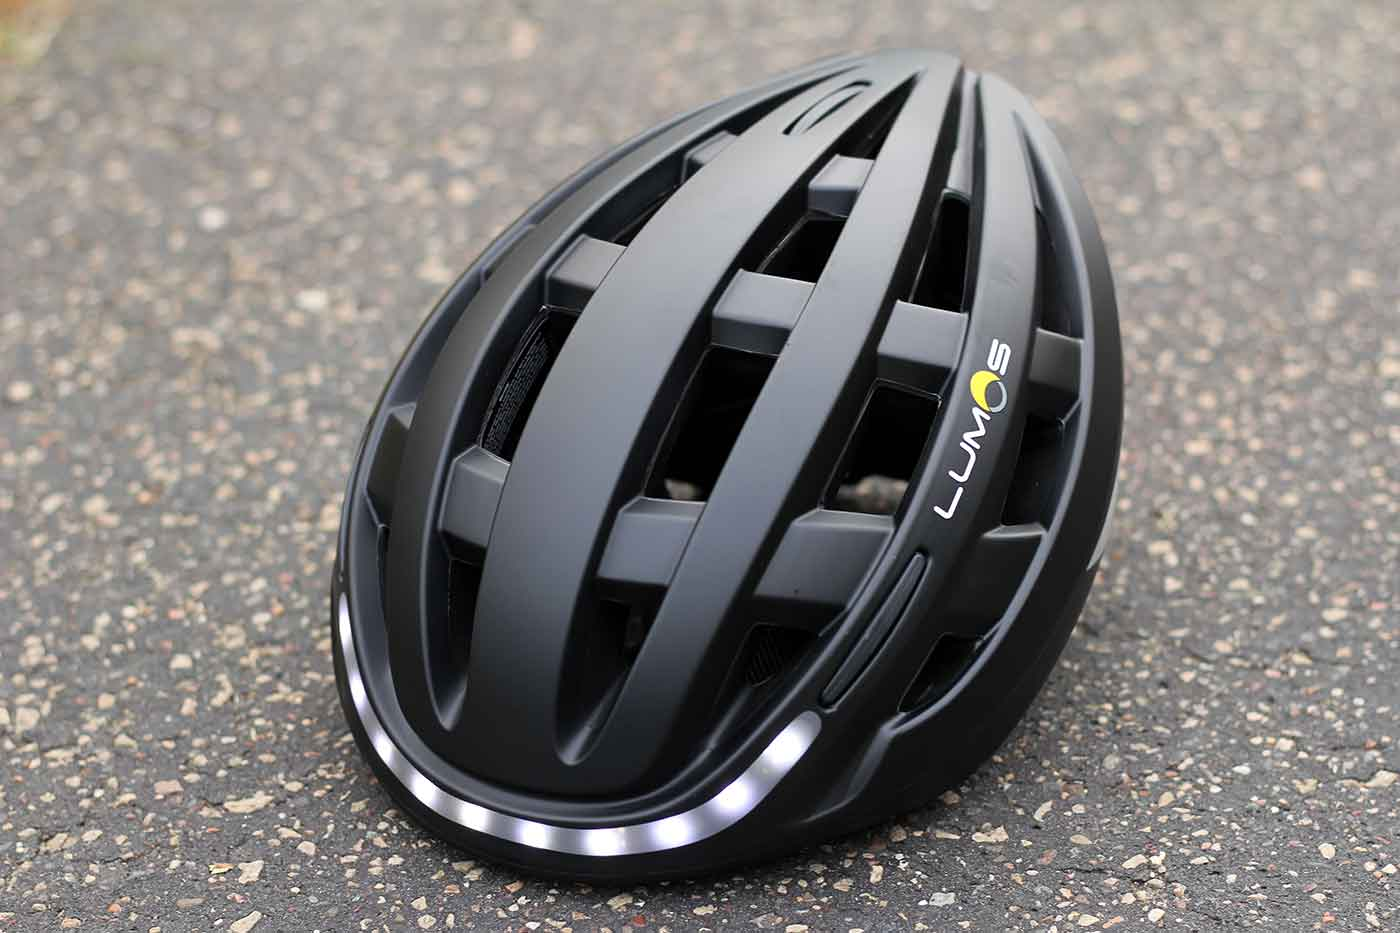 Ride With Confidence Lumos Light Up Helmet Review Gearjunkie